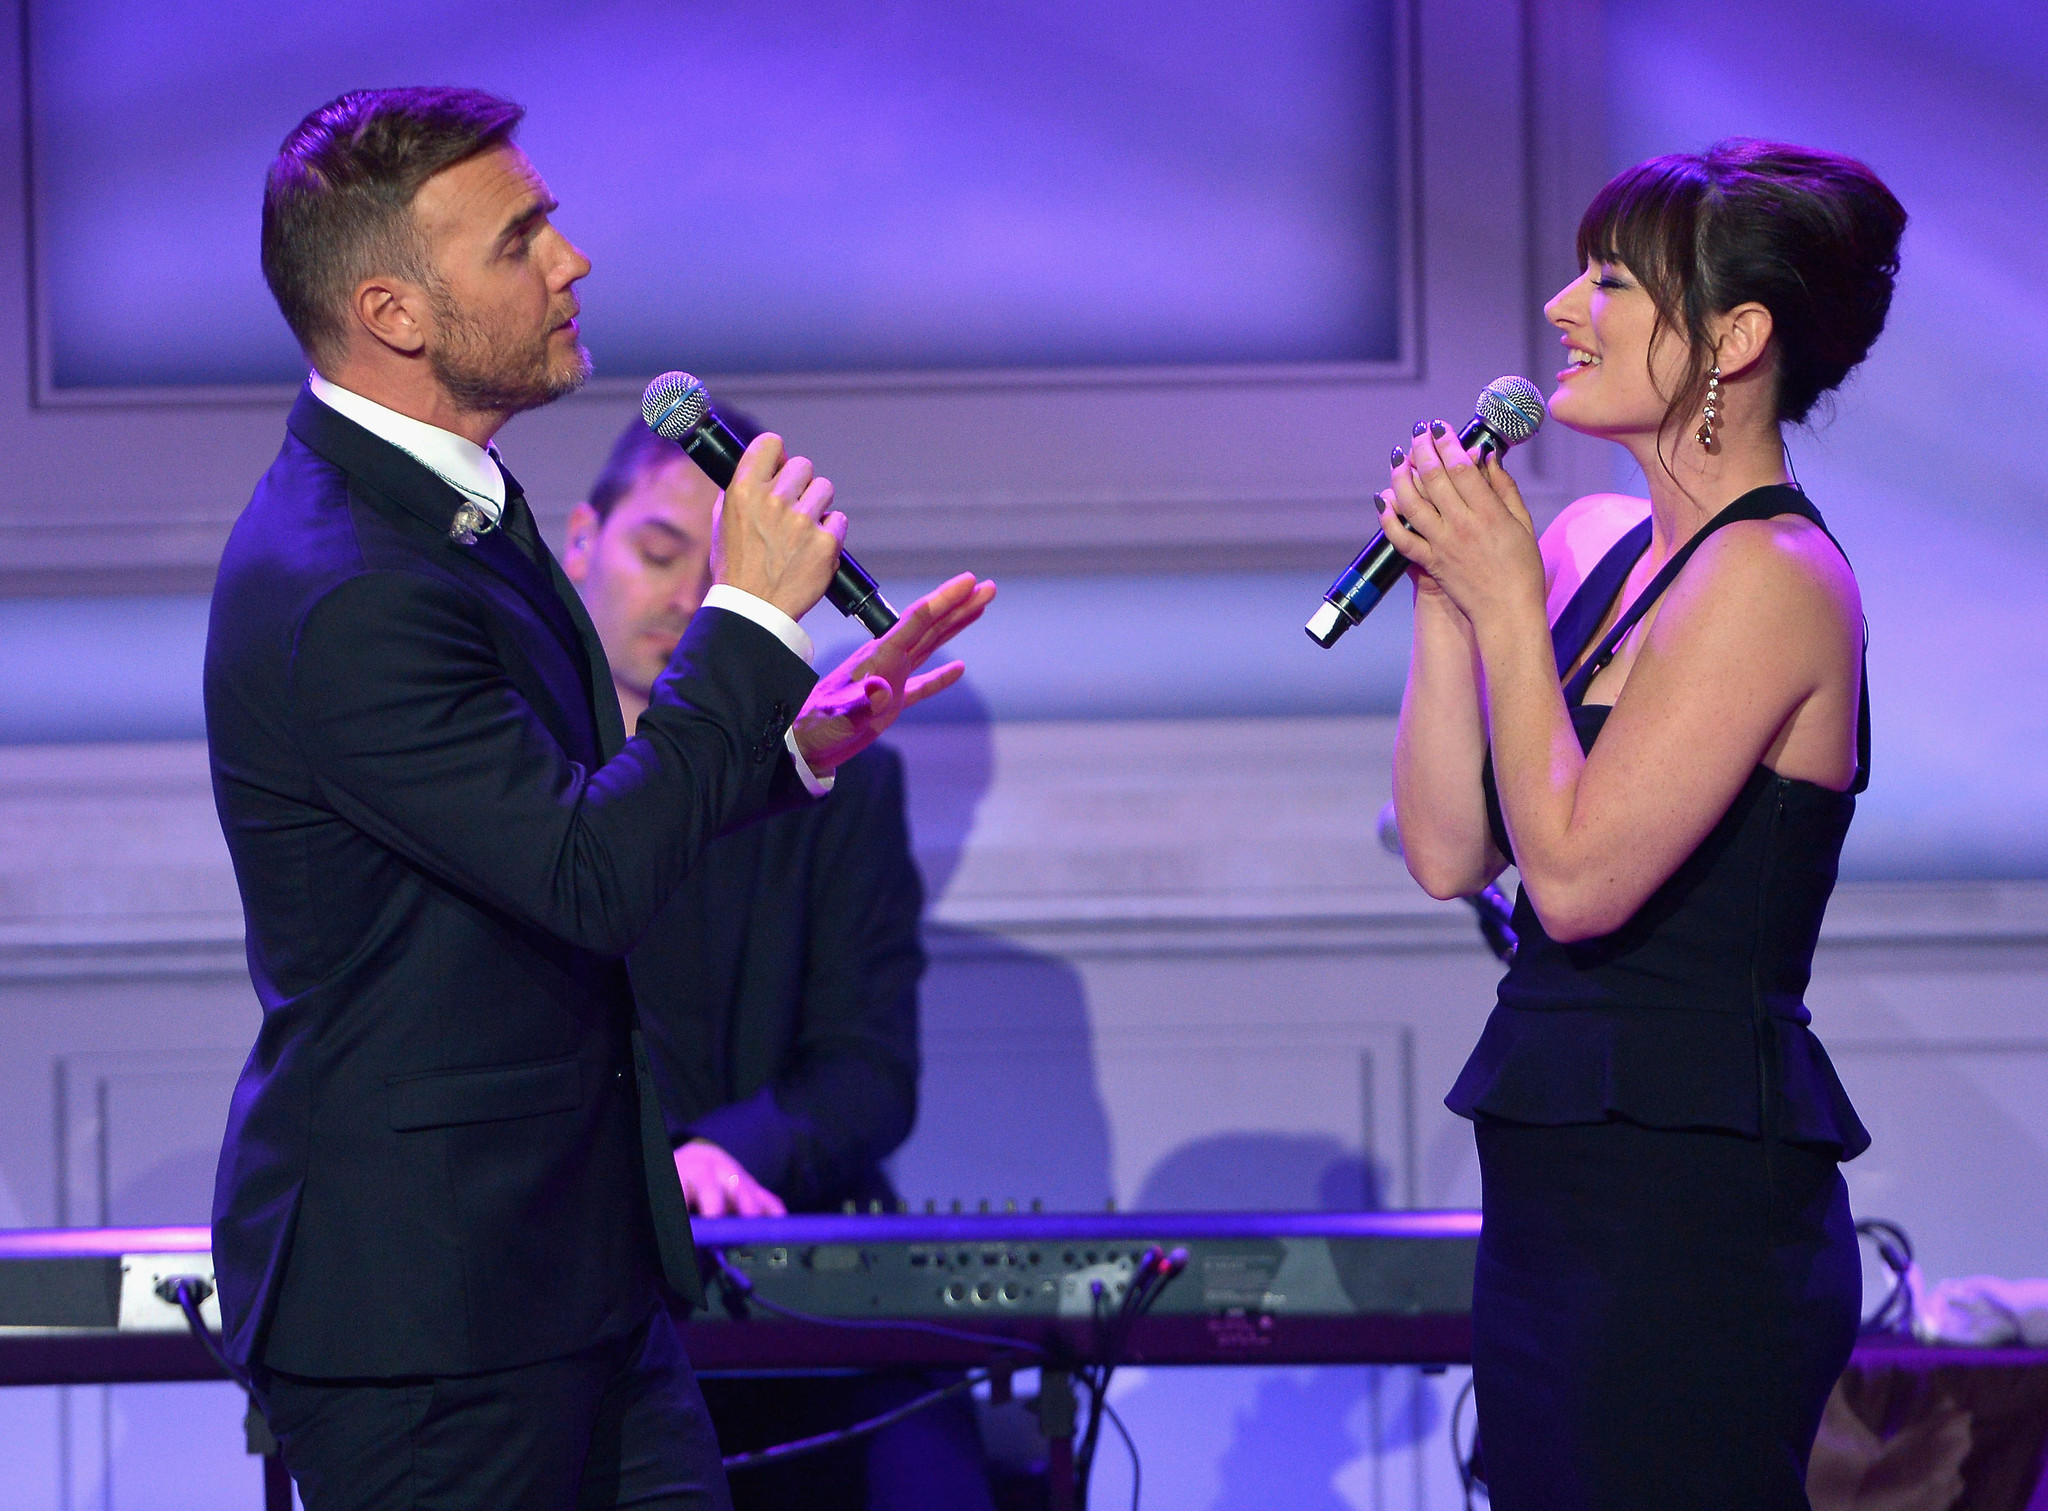 2014 The Weinstein Company's Academy Award party photos: Gary Barlow